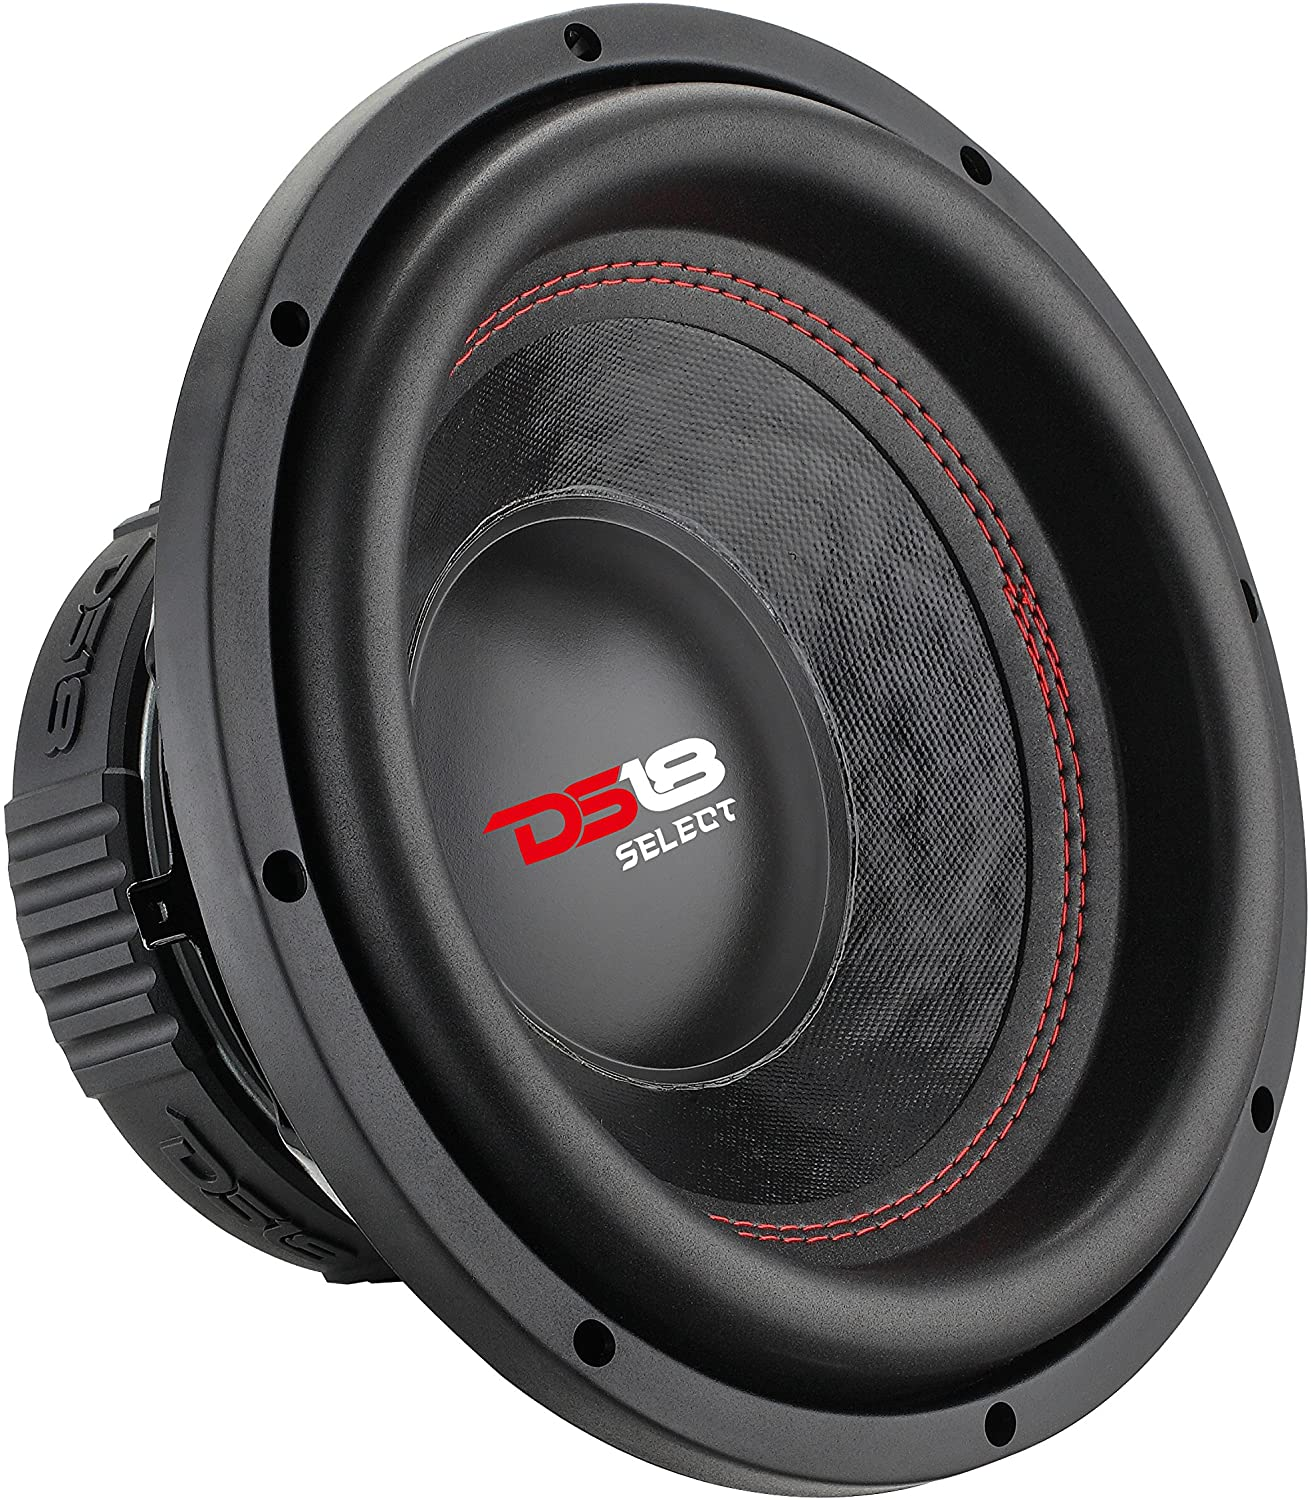 DS18 SLC10S Car Subwoofer Audio Speaker 440W MAX Power and Foam Surround for Vehicle Stereo Sound System 10 in Black Steel Basket Paper Glass Fiber Cone Single Voice Coil 4 Ohm Impedance